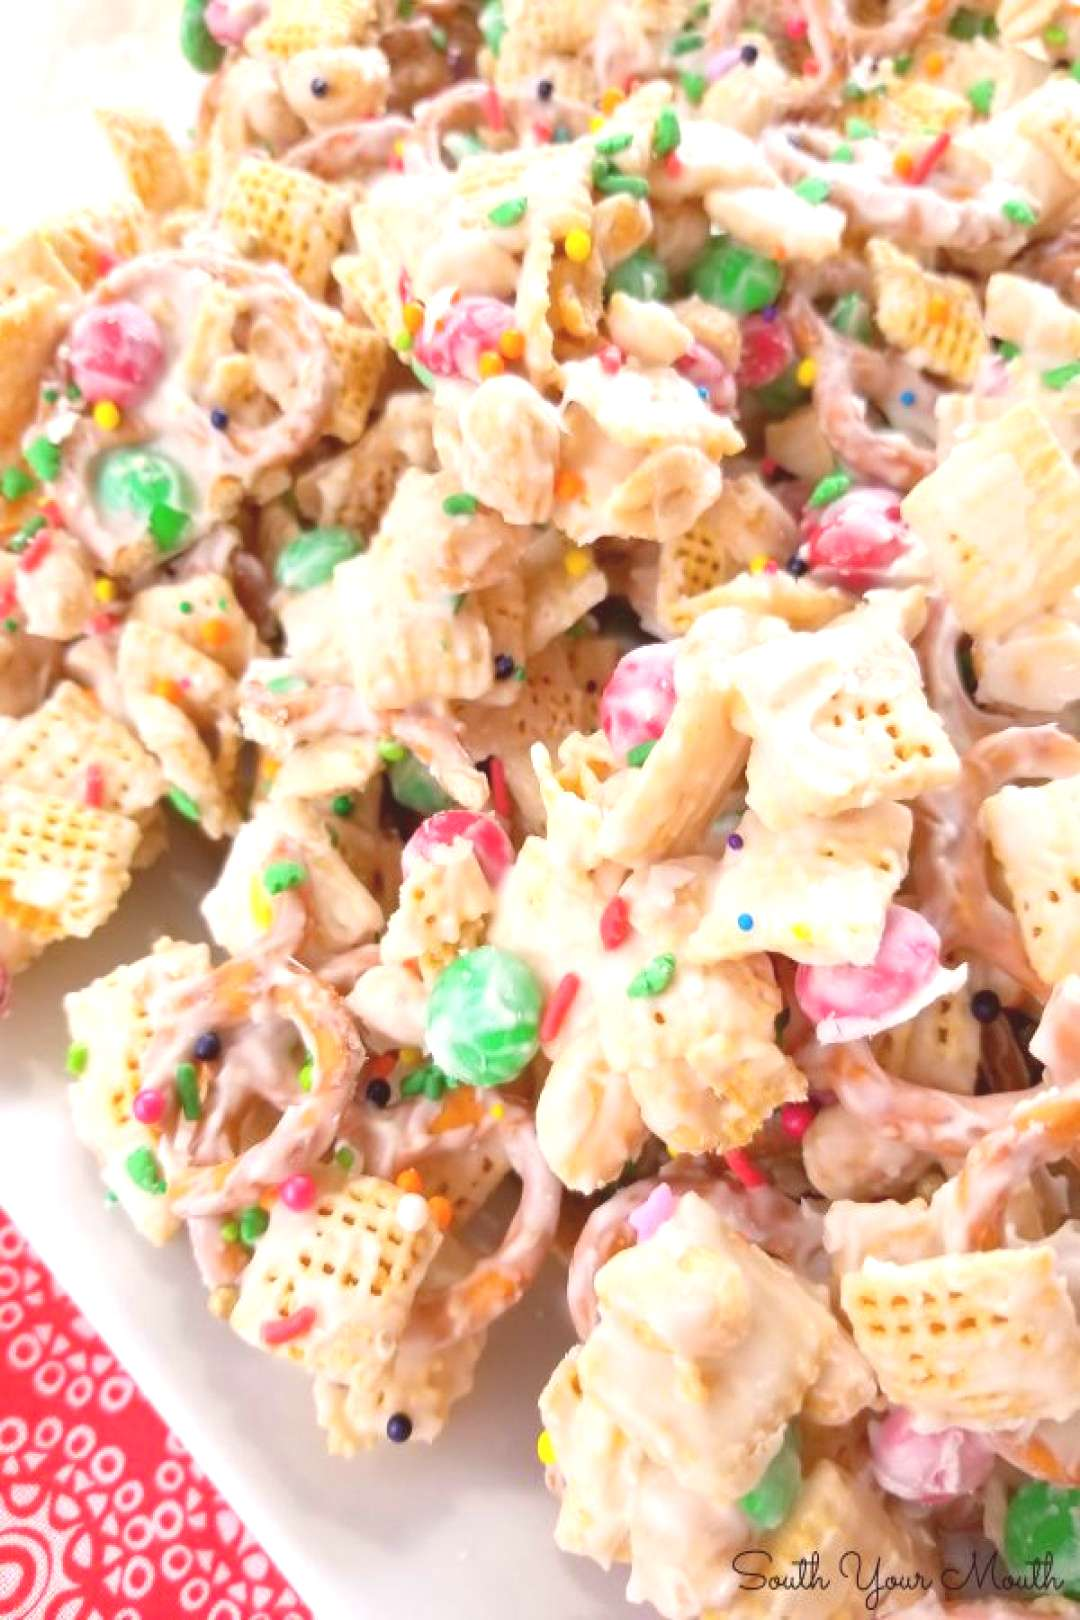 A sweet and salty snack mix made with chex cereal, pretzels, peanuts and M&M's coated with white